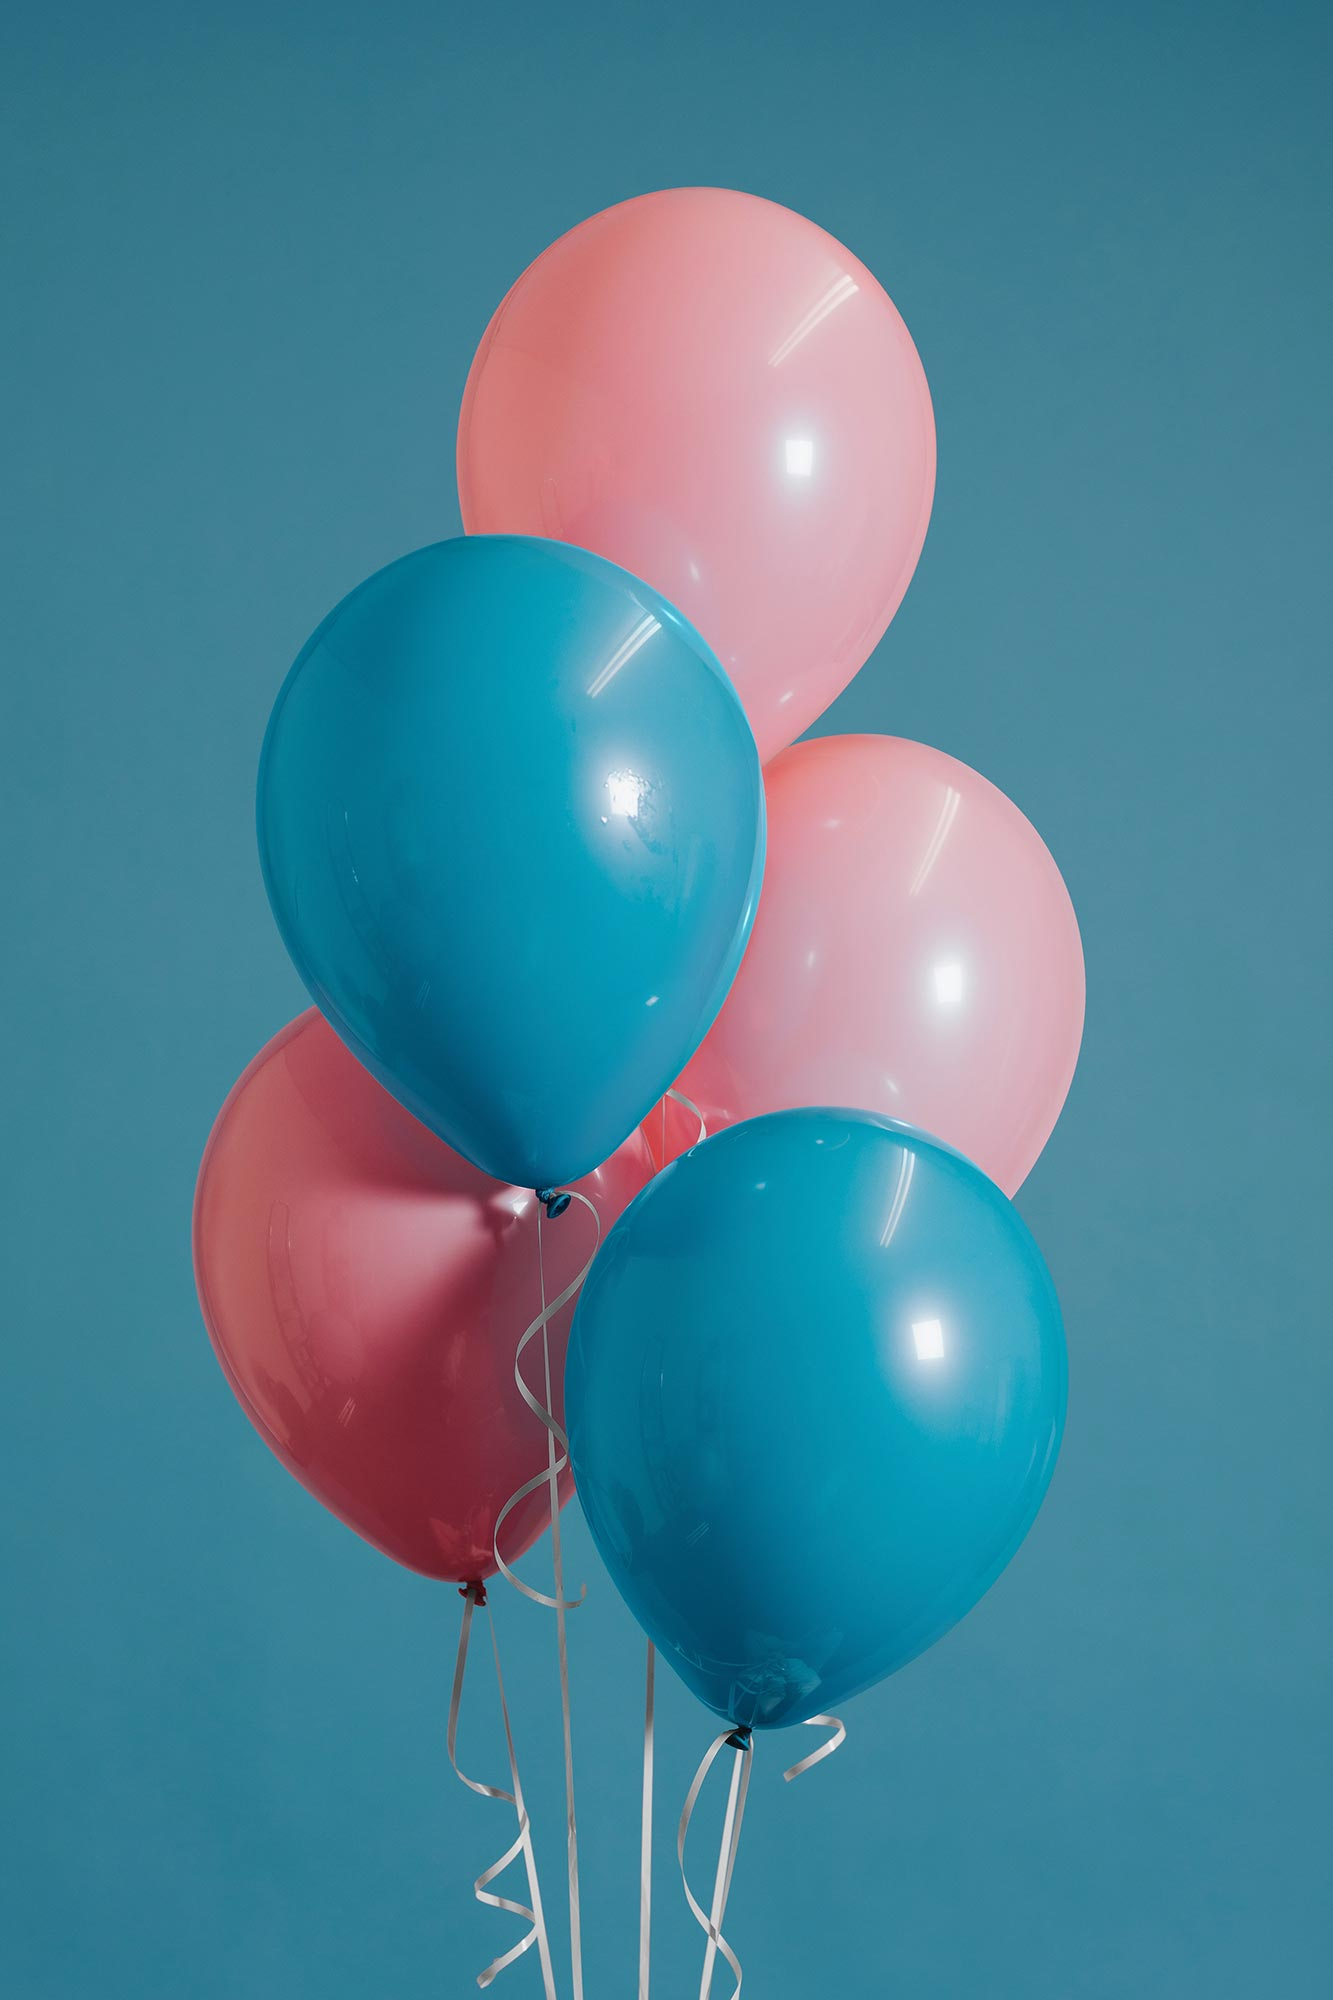 blue and pink ballons